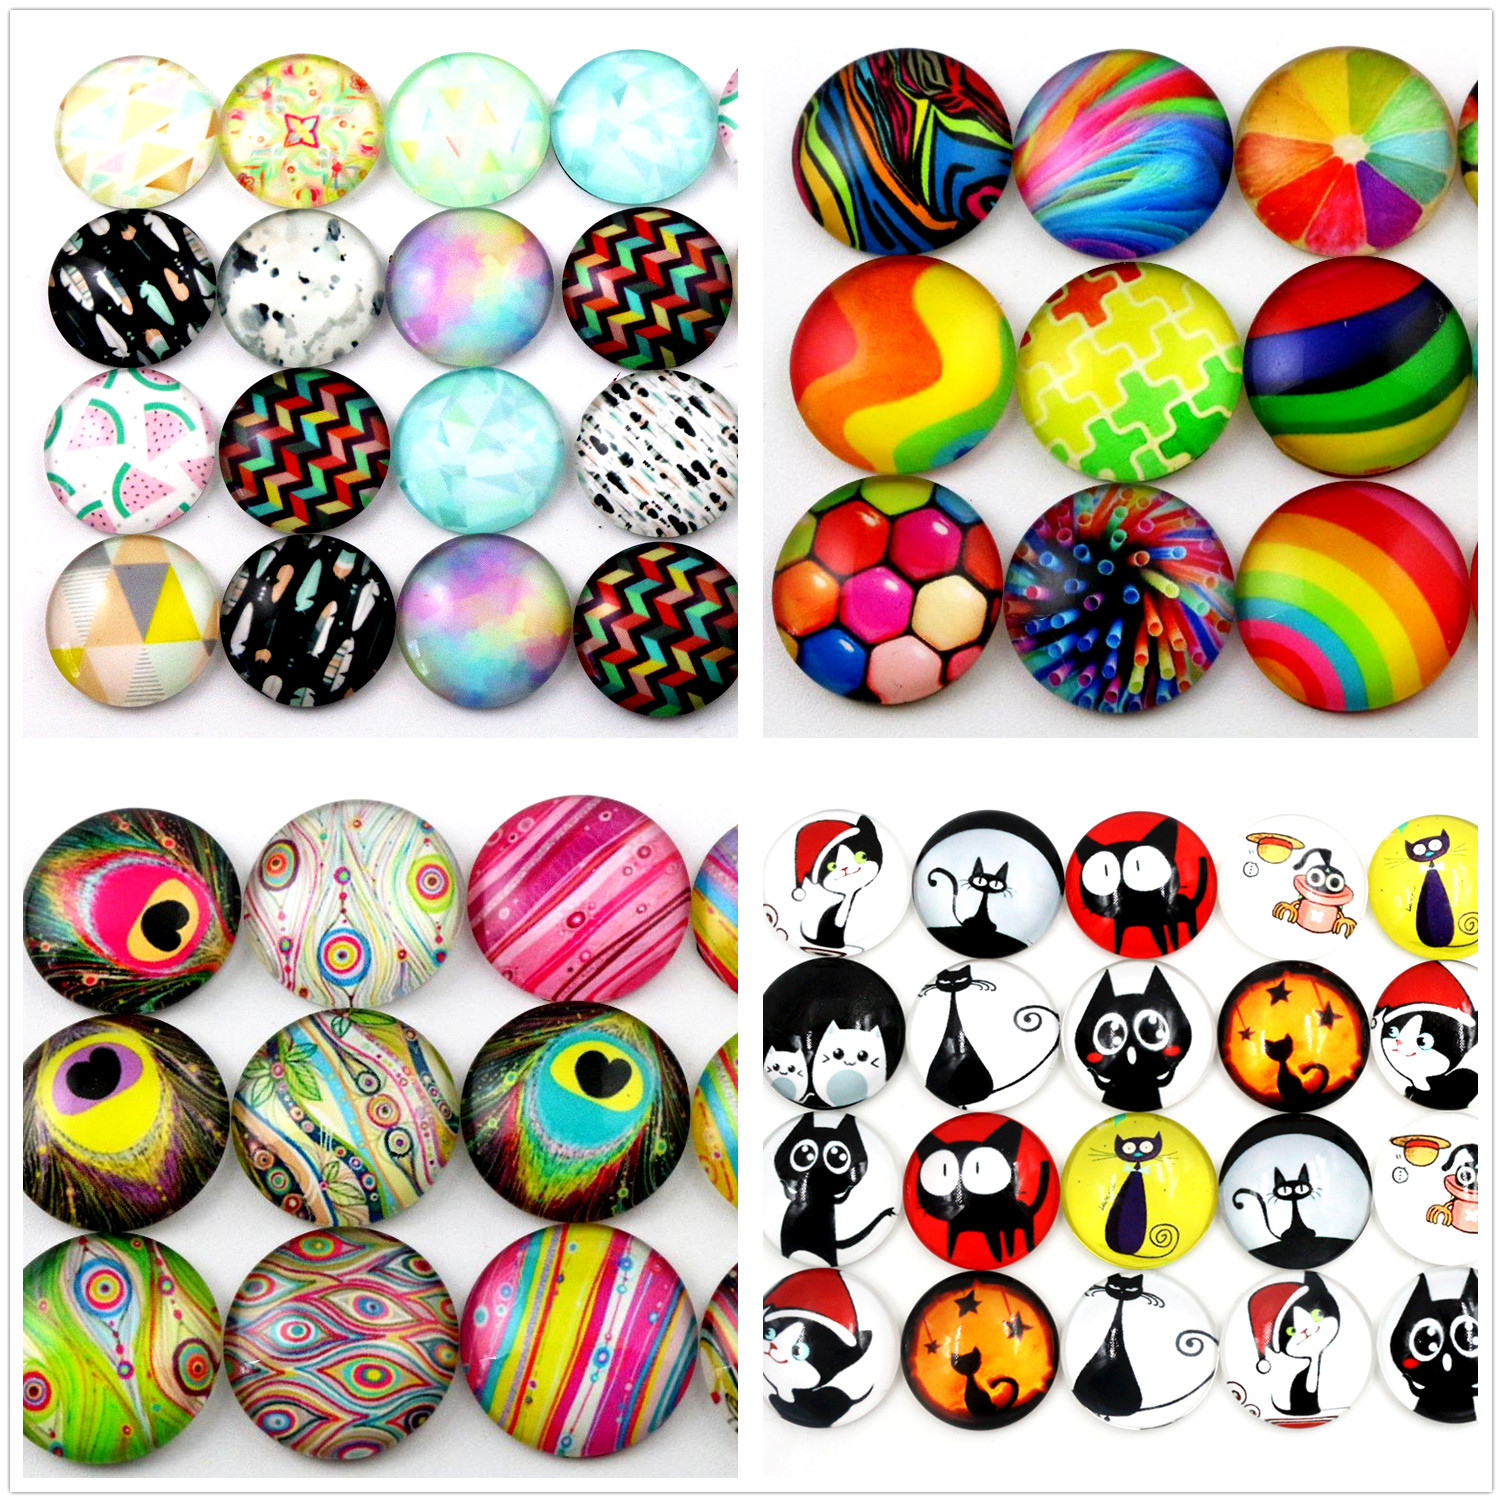 Hot Sale 10pcs 20mm New Fashion 8 Style Mixed Handmade Glass Cabochons Pattern Domed Jewelry Accessories Supplies